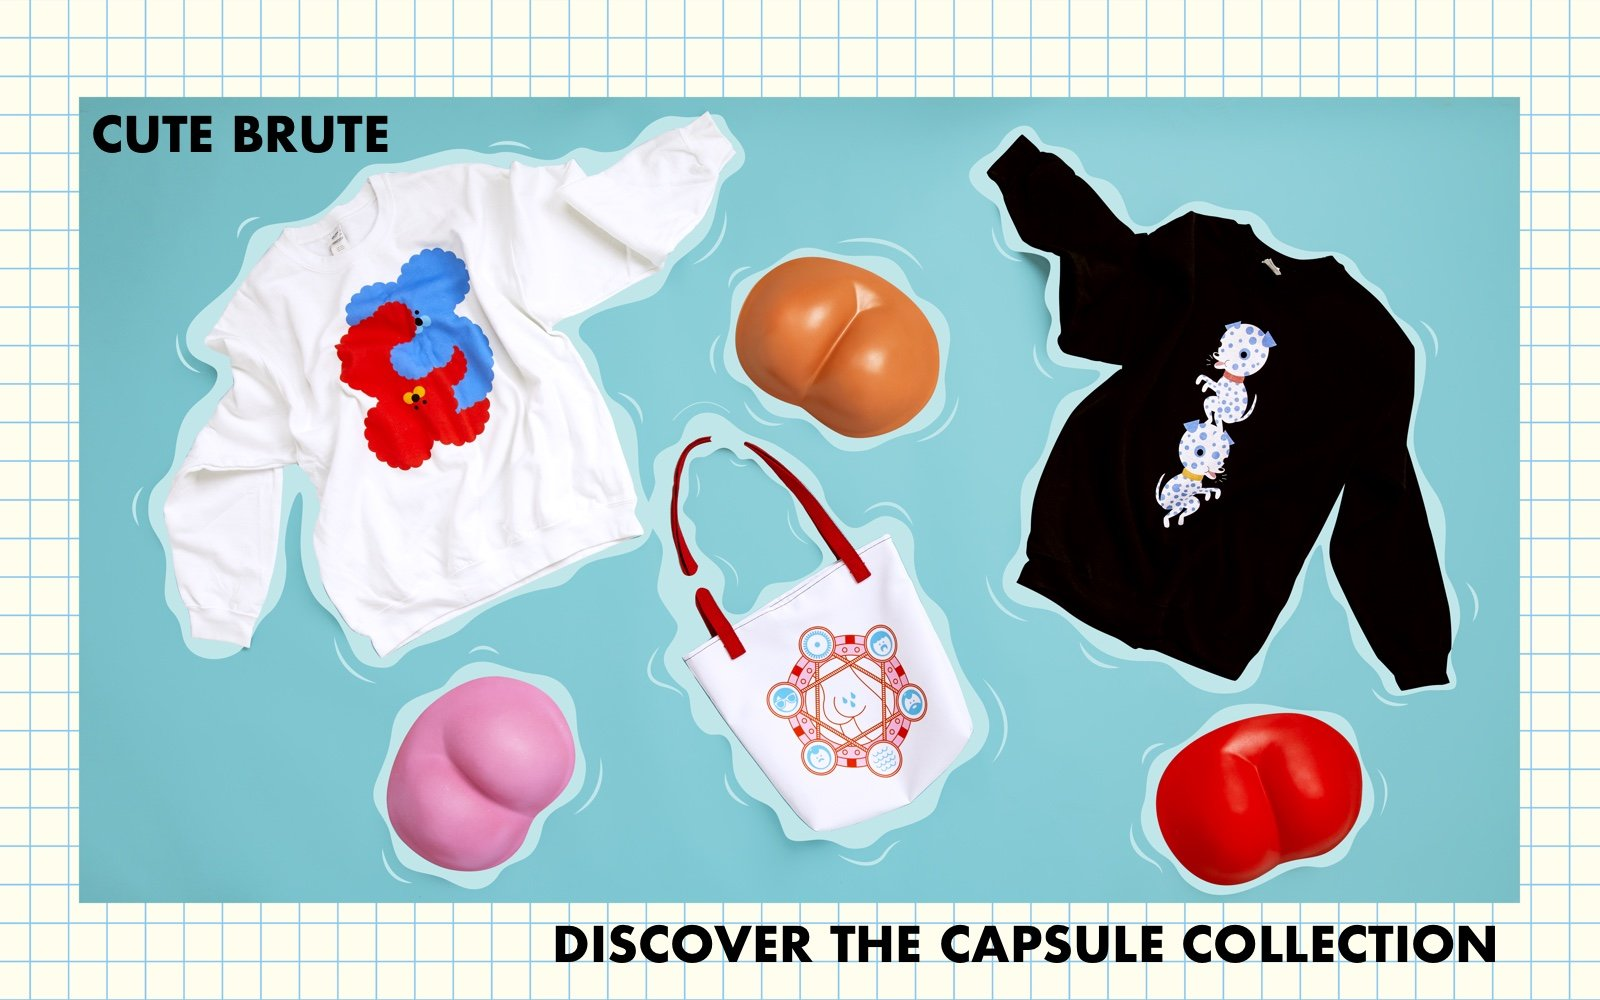 Cute Brute x Rolik - Discover The Capsule Collection